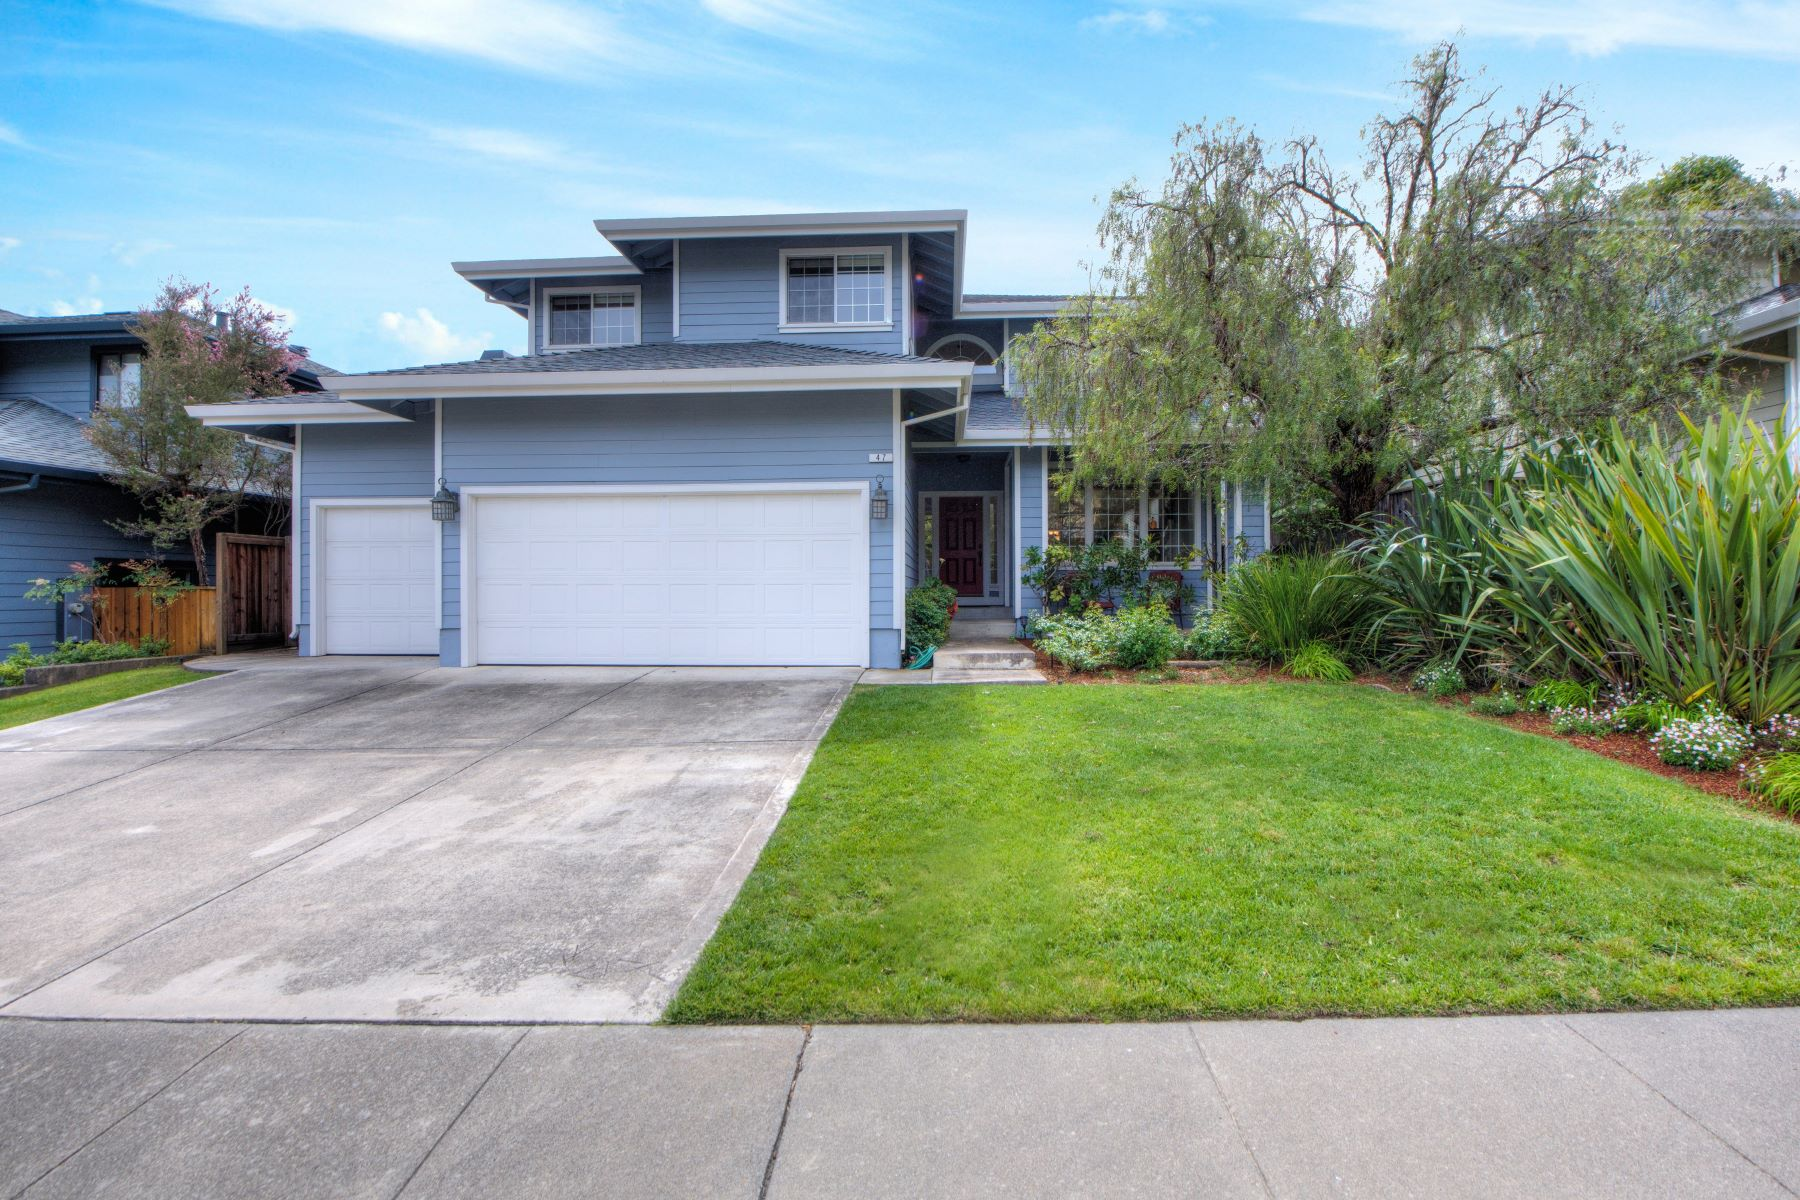 Single Family Home for Sale at Views to Die For in Ignacio Valley! 47 Aaron Drive Novato, California 94949 United States